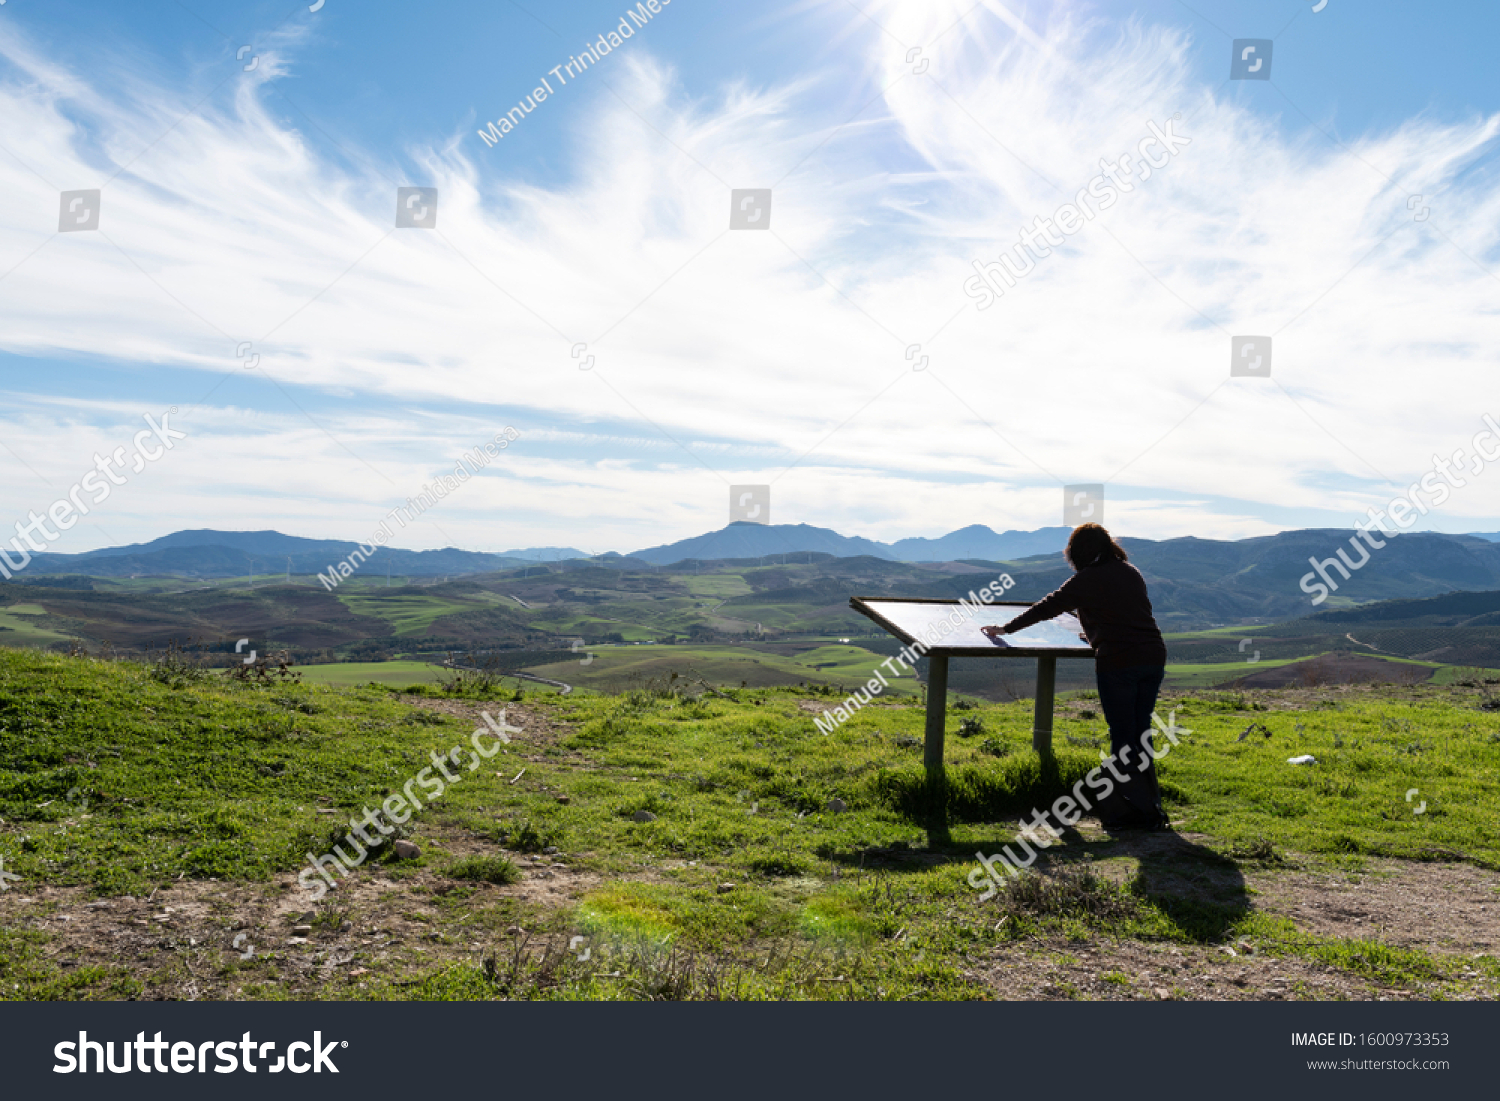 stock-photo-traveler-looking-at-the-trai